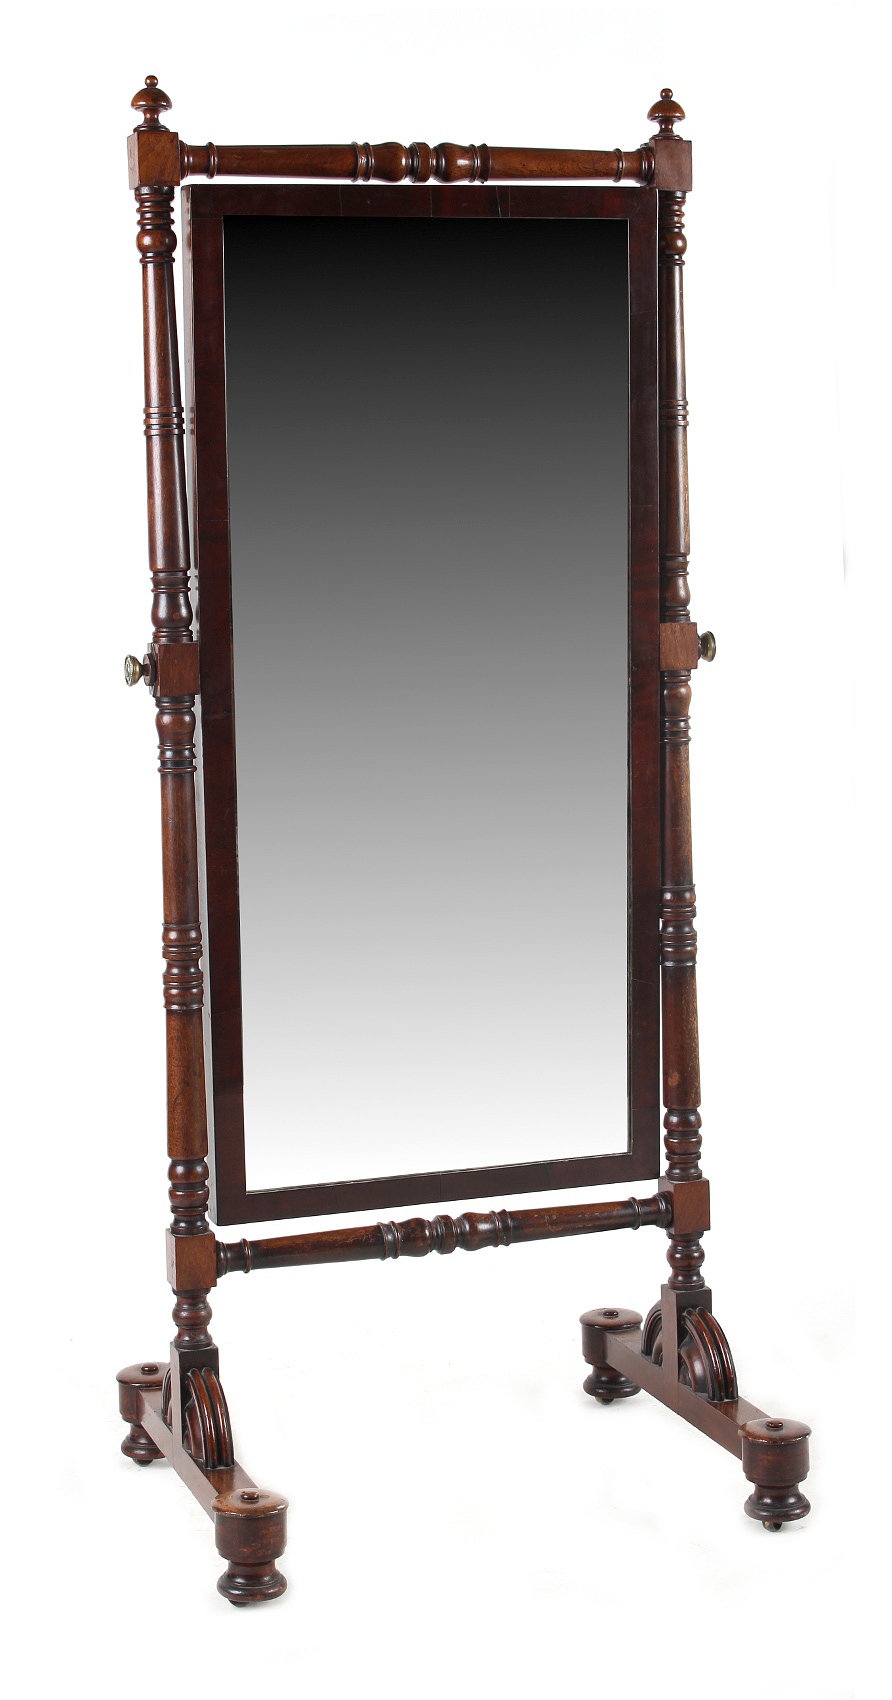 Lot 163 - Property of a lady of title - an early 19th century George IV / William IV mahogany cheval mirror,